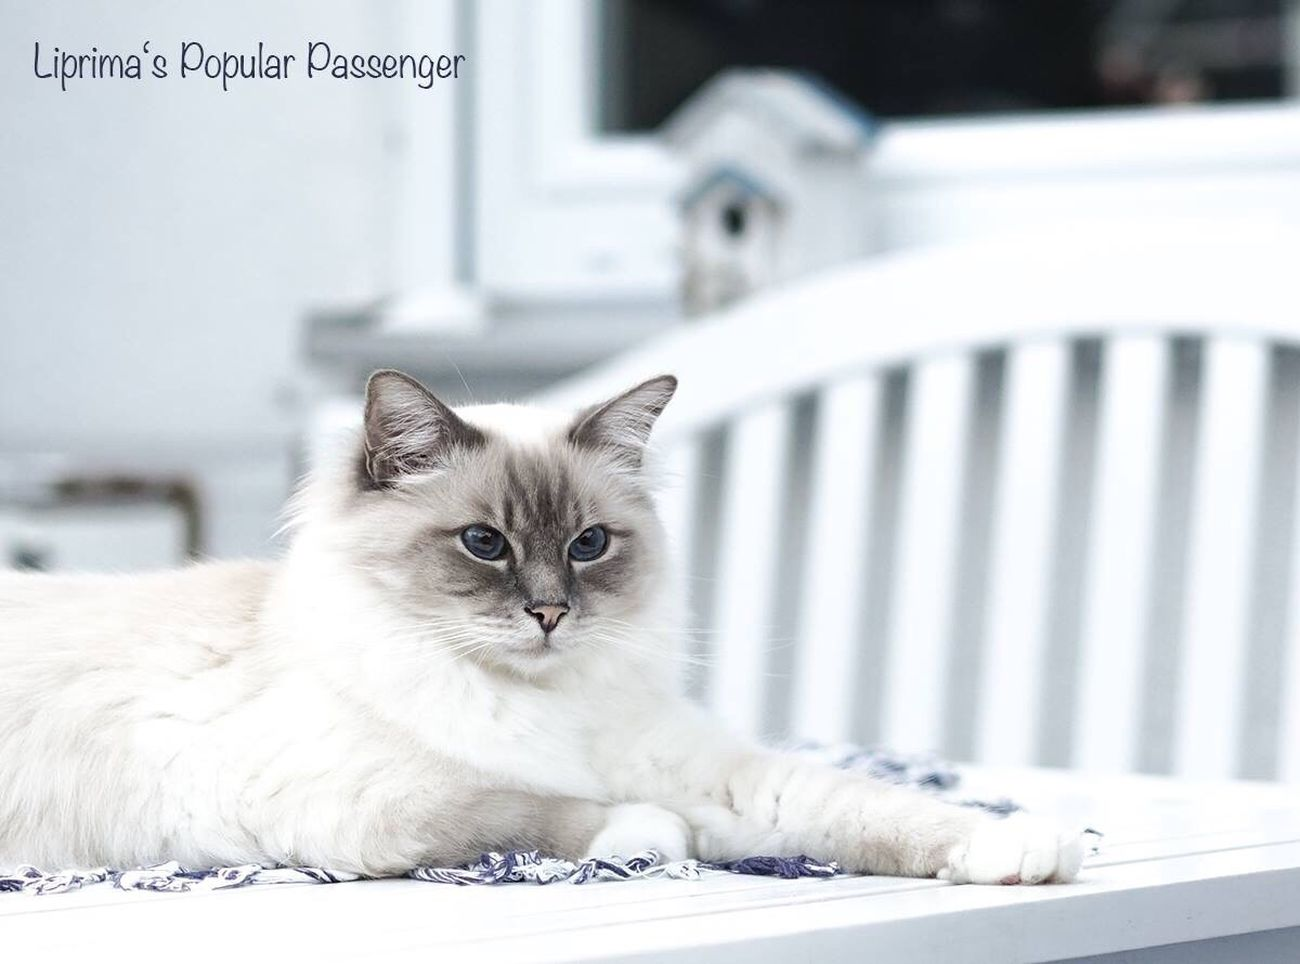 Domestic Animals Pets Animal Themes Domestic Cat One Animal White Color Close-up Focus On Foreground Cat Mammal Front View Animal Head  Alertness Feline Whisker Zoology No People Animal Hair Whiskers Animal Birma Birman  Birmanie Birmania Birman Cat